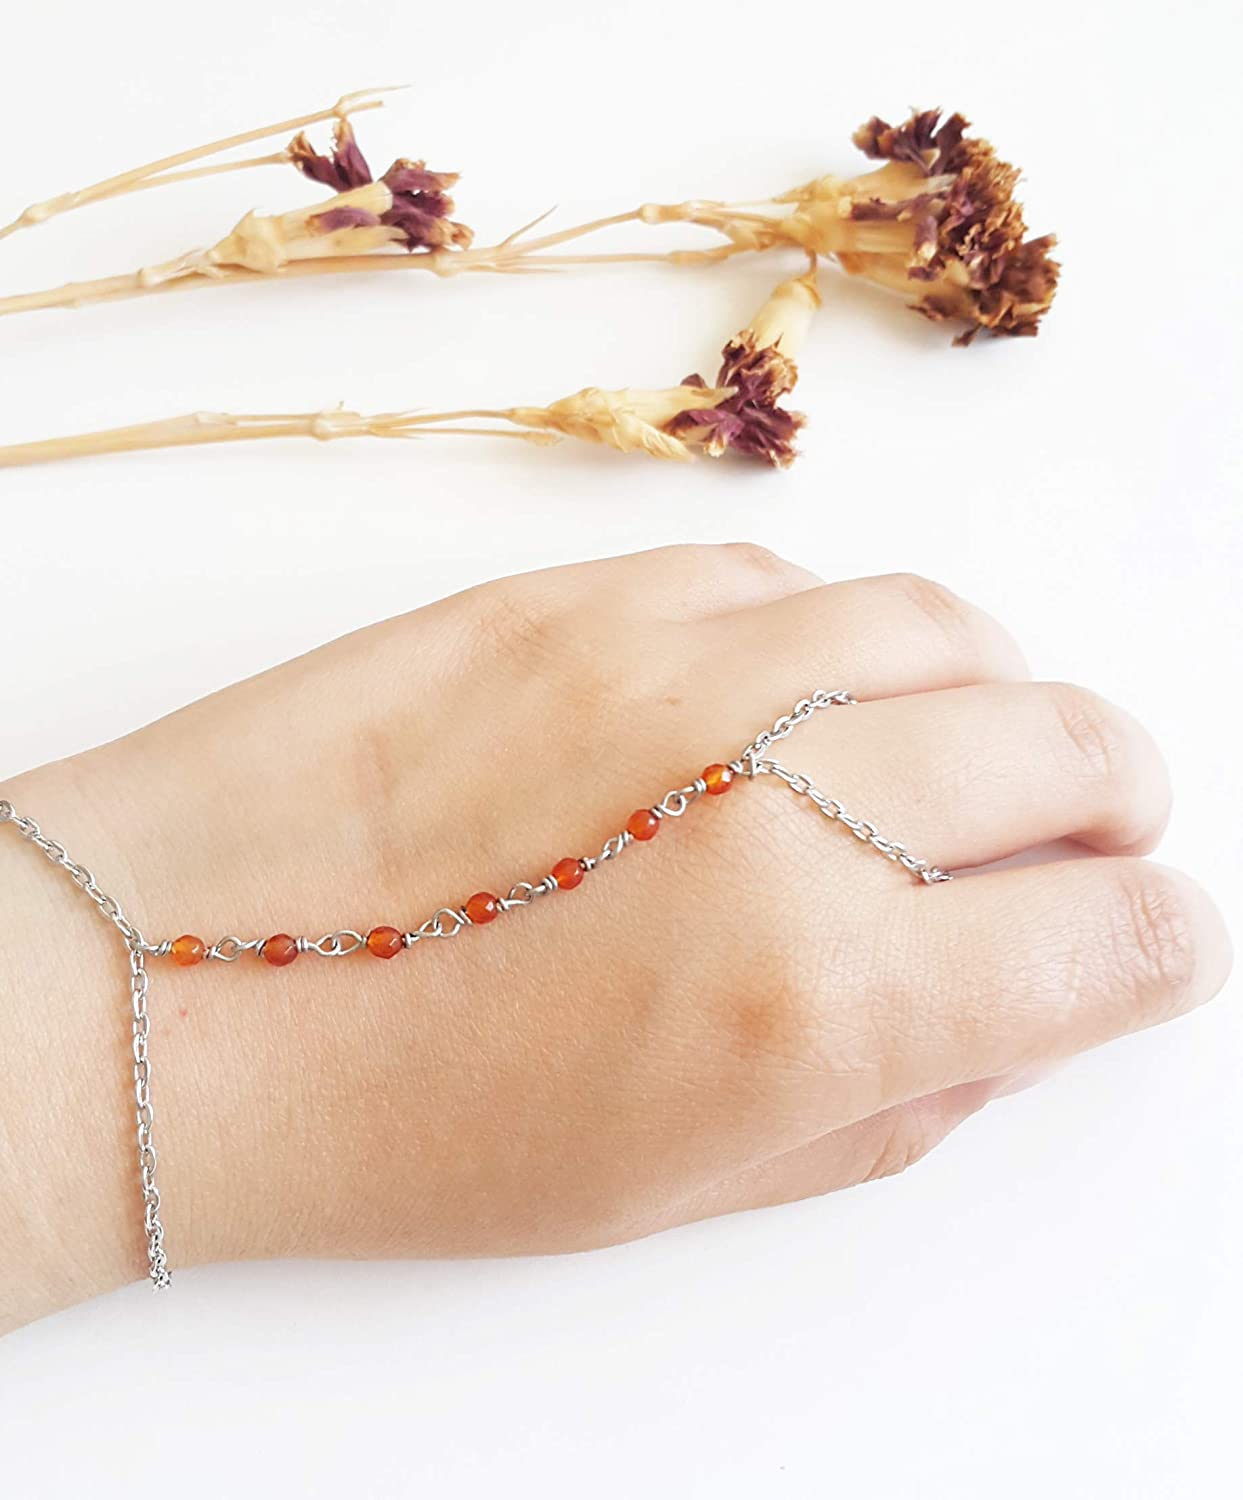 Agate slave bracelet - jewelry Tulsa Mall hand chain Delicate sold out